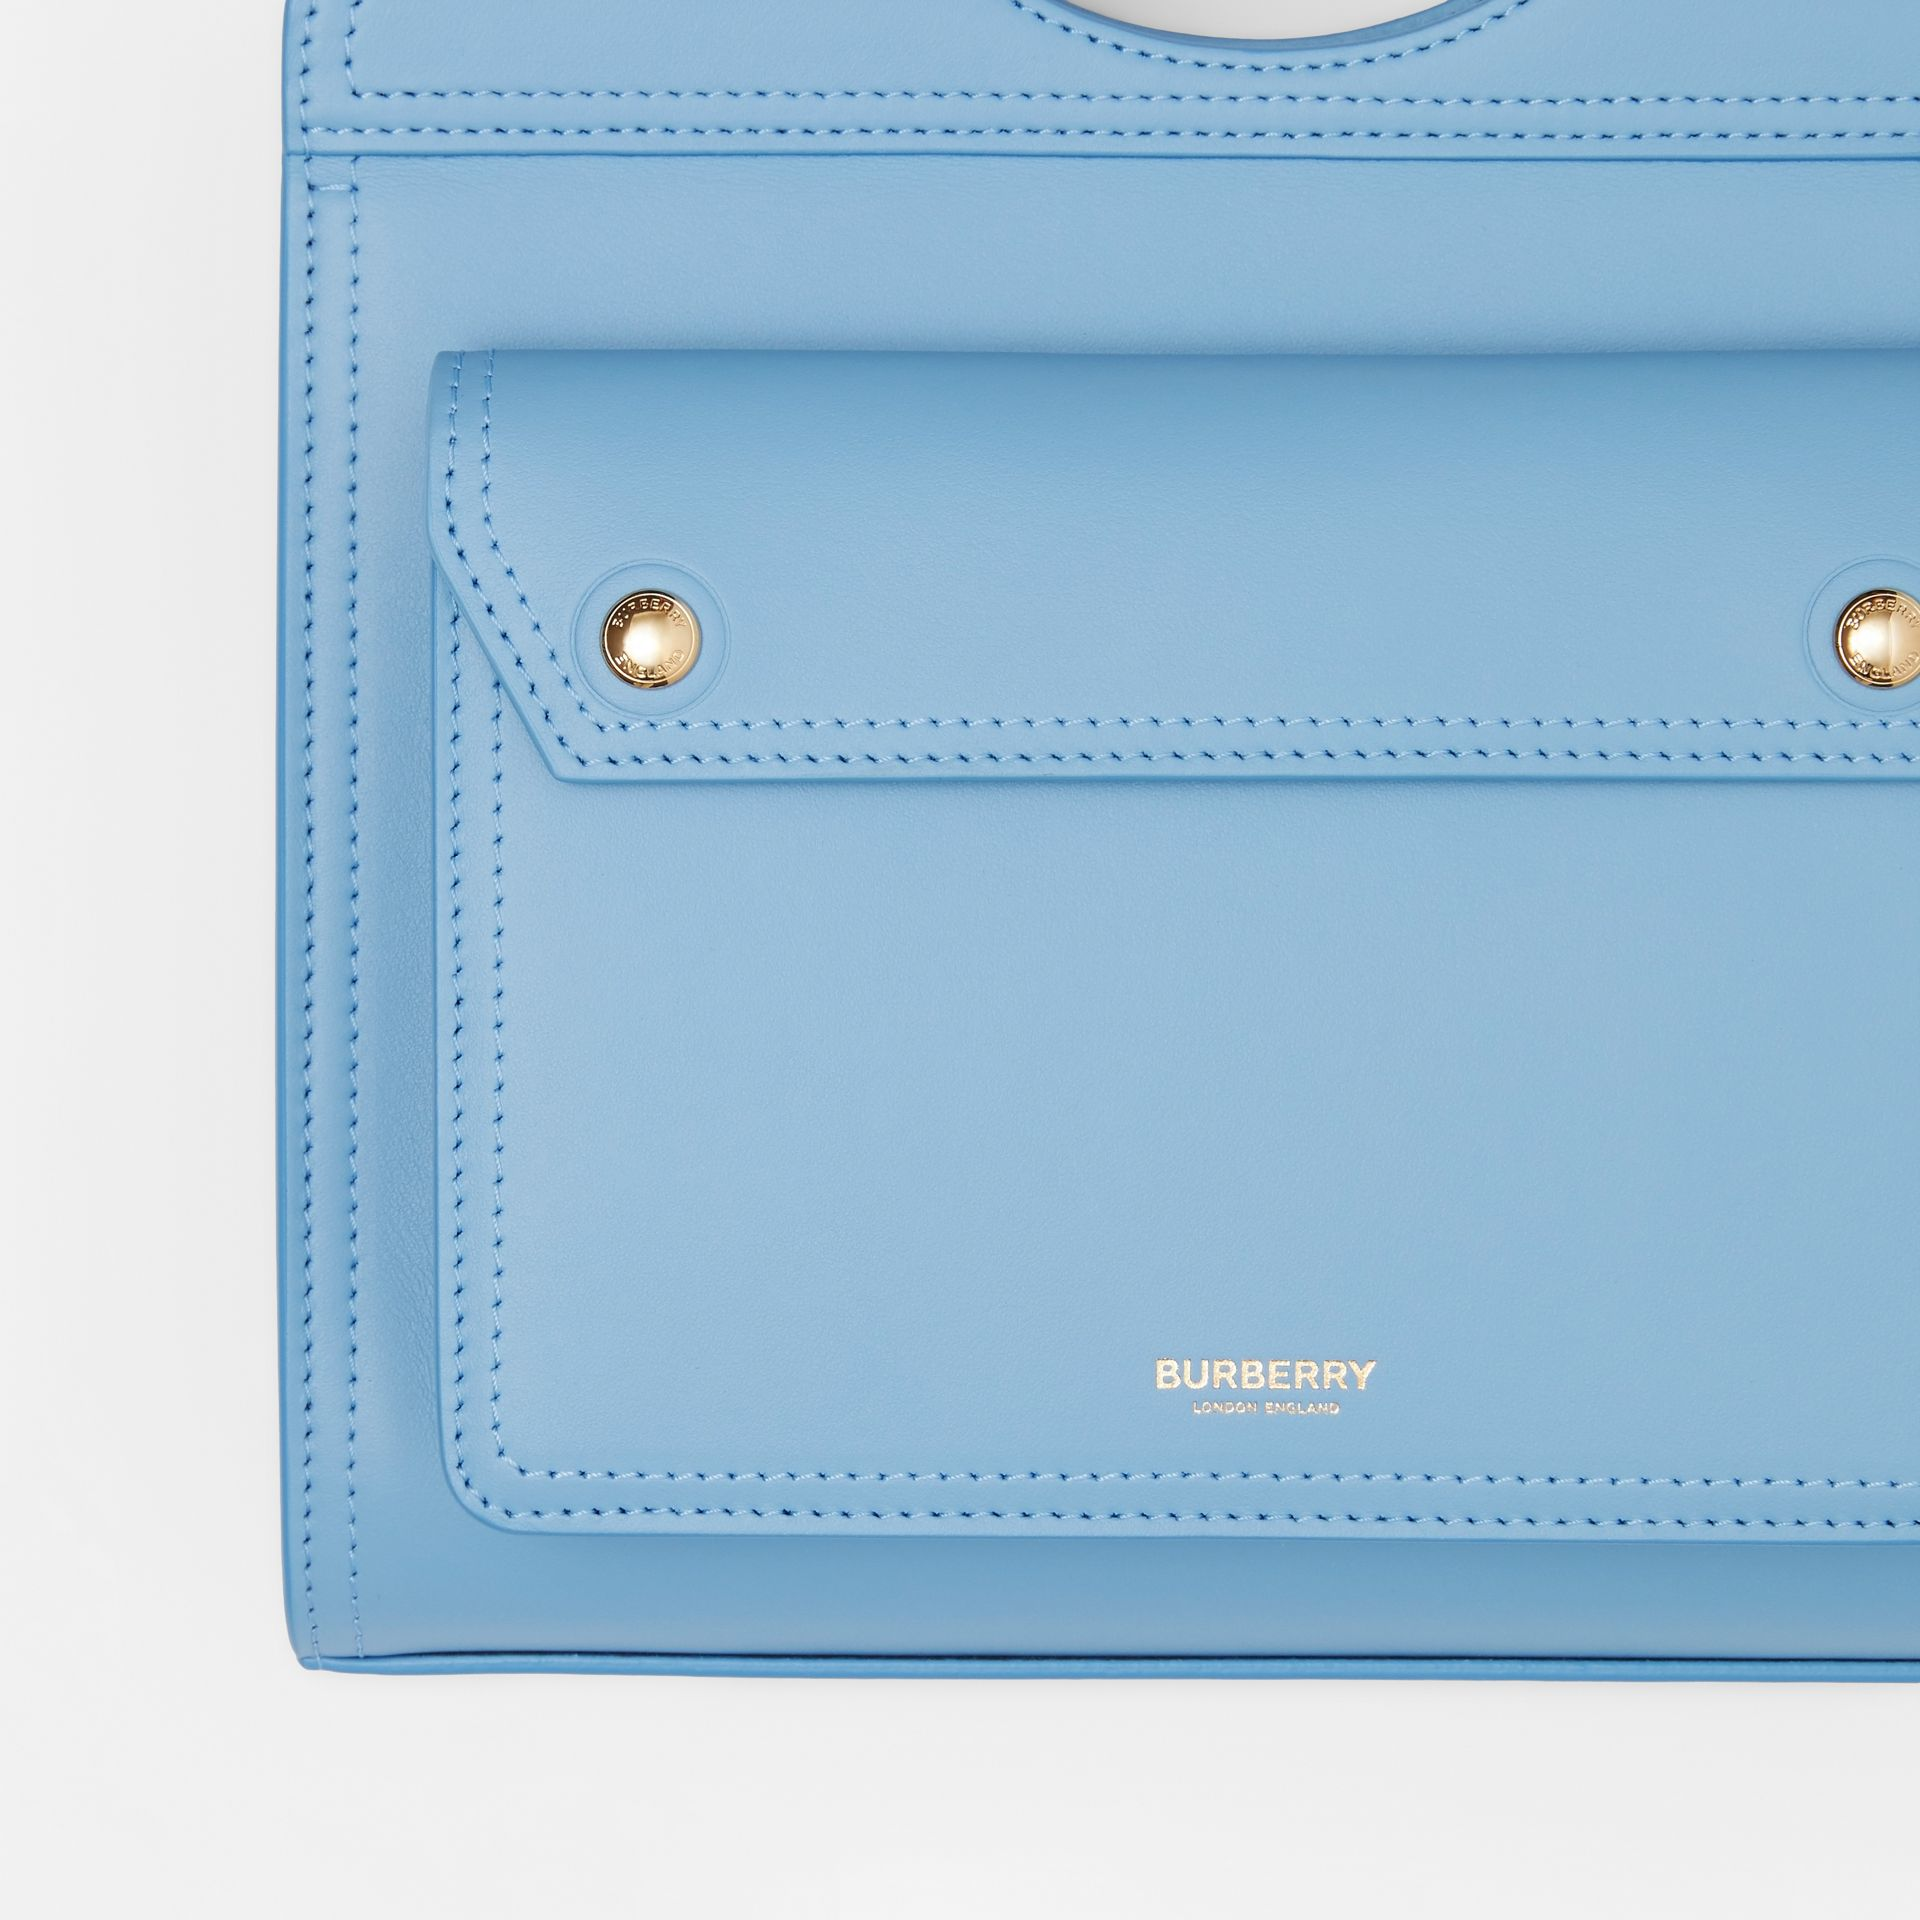 Mini Leather Pocket Bag in Blue Topaz - Women | Burberry United States - gallery image 1